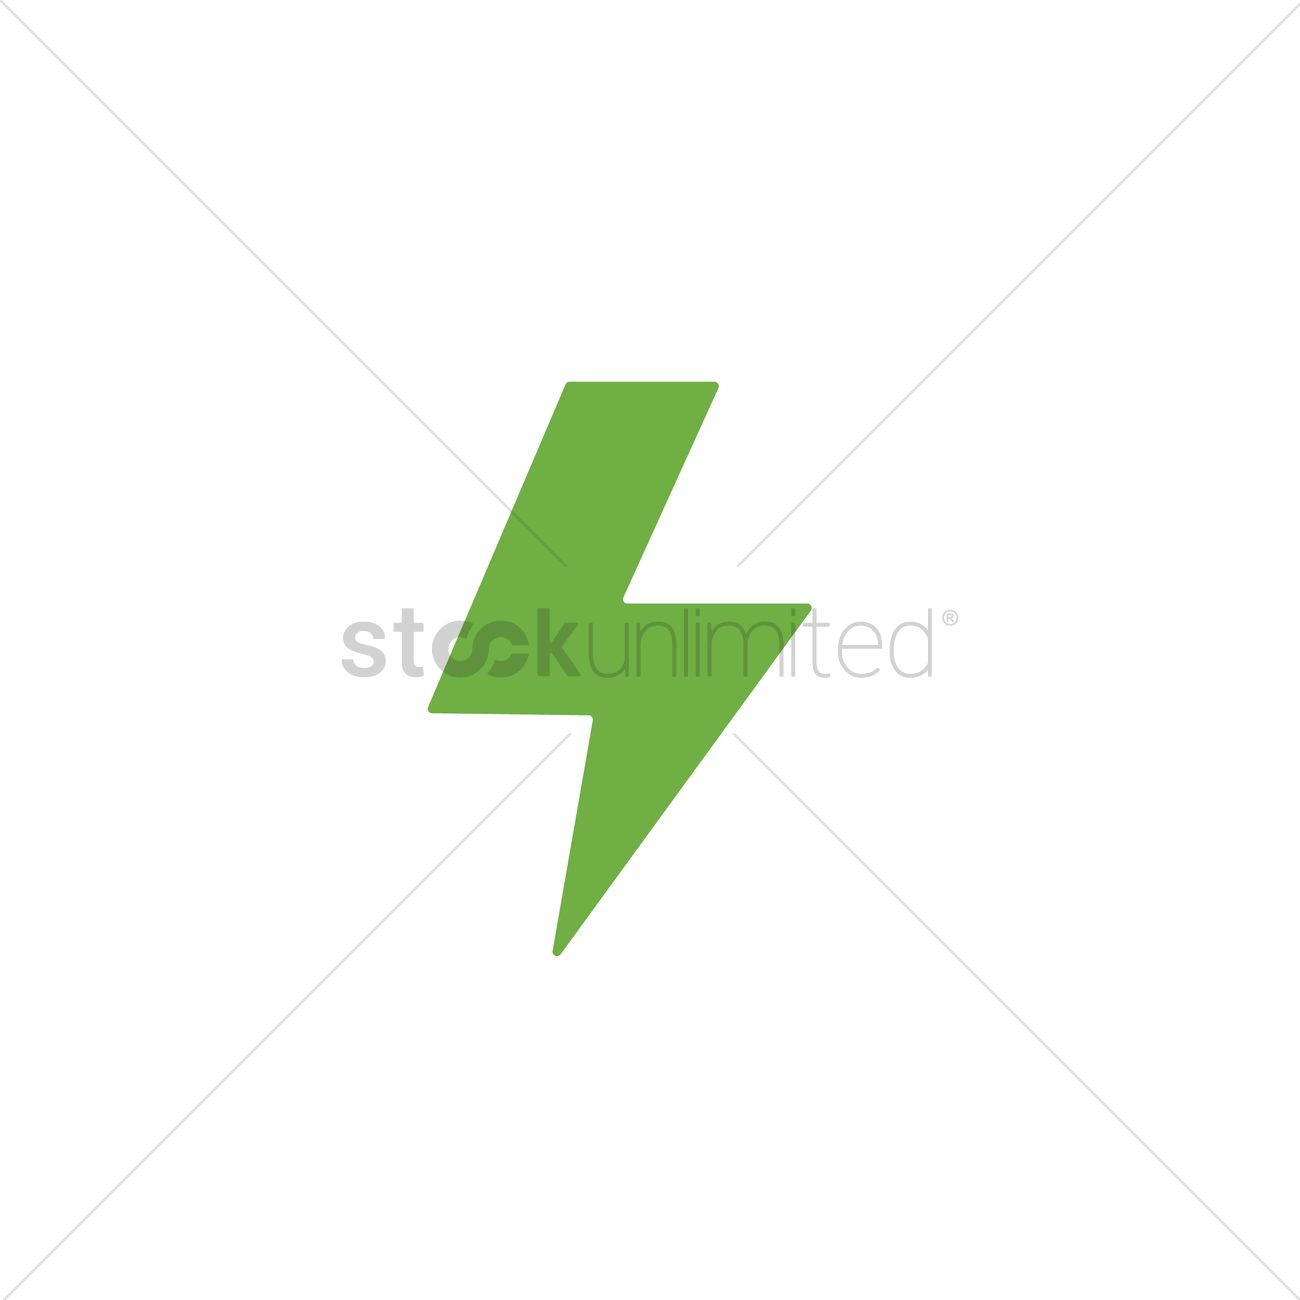 High voltage symbol vector image 2031091 stockunlimited high voltage symbol vector graphic buycottarizona Images